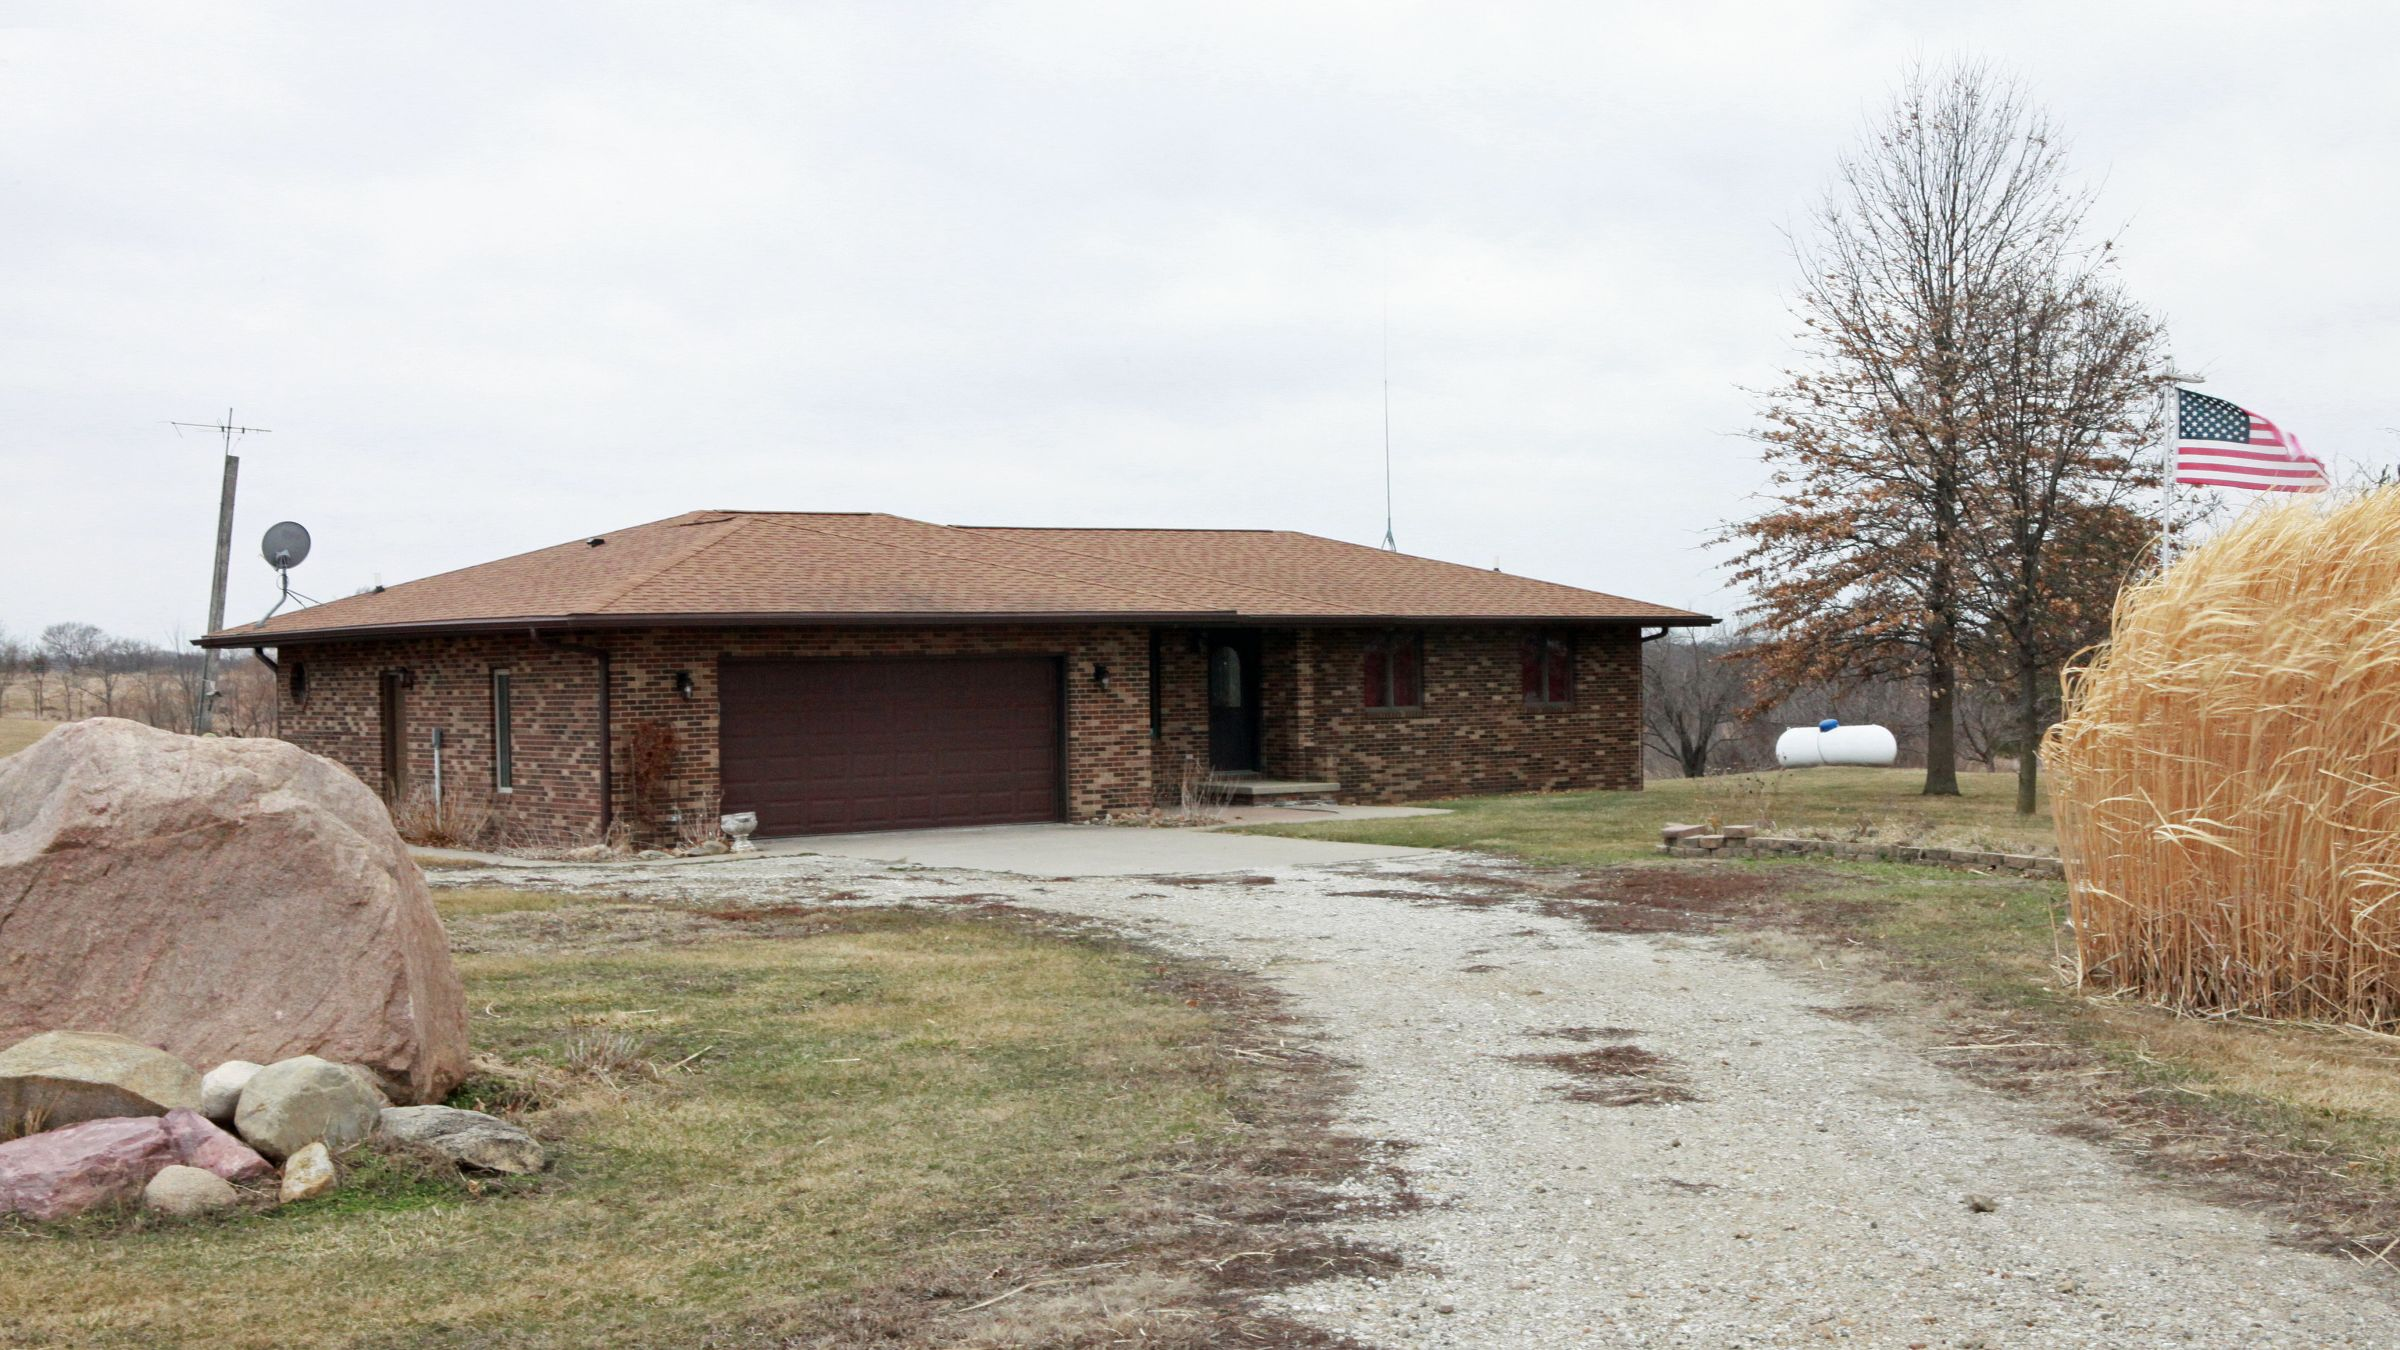 residential-land-lucas-county-iowa-25-acres-listing-number-15402-3-2021-03-10-174258.jpg